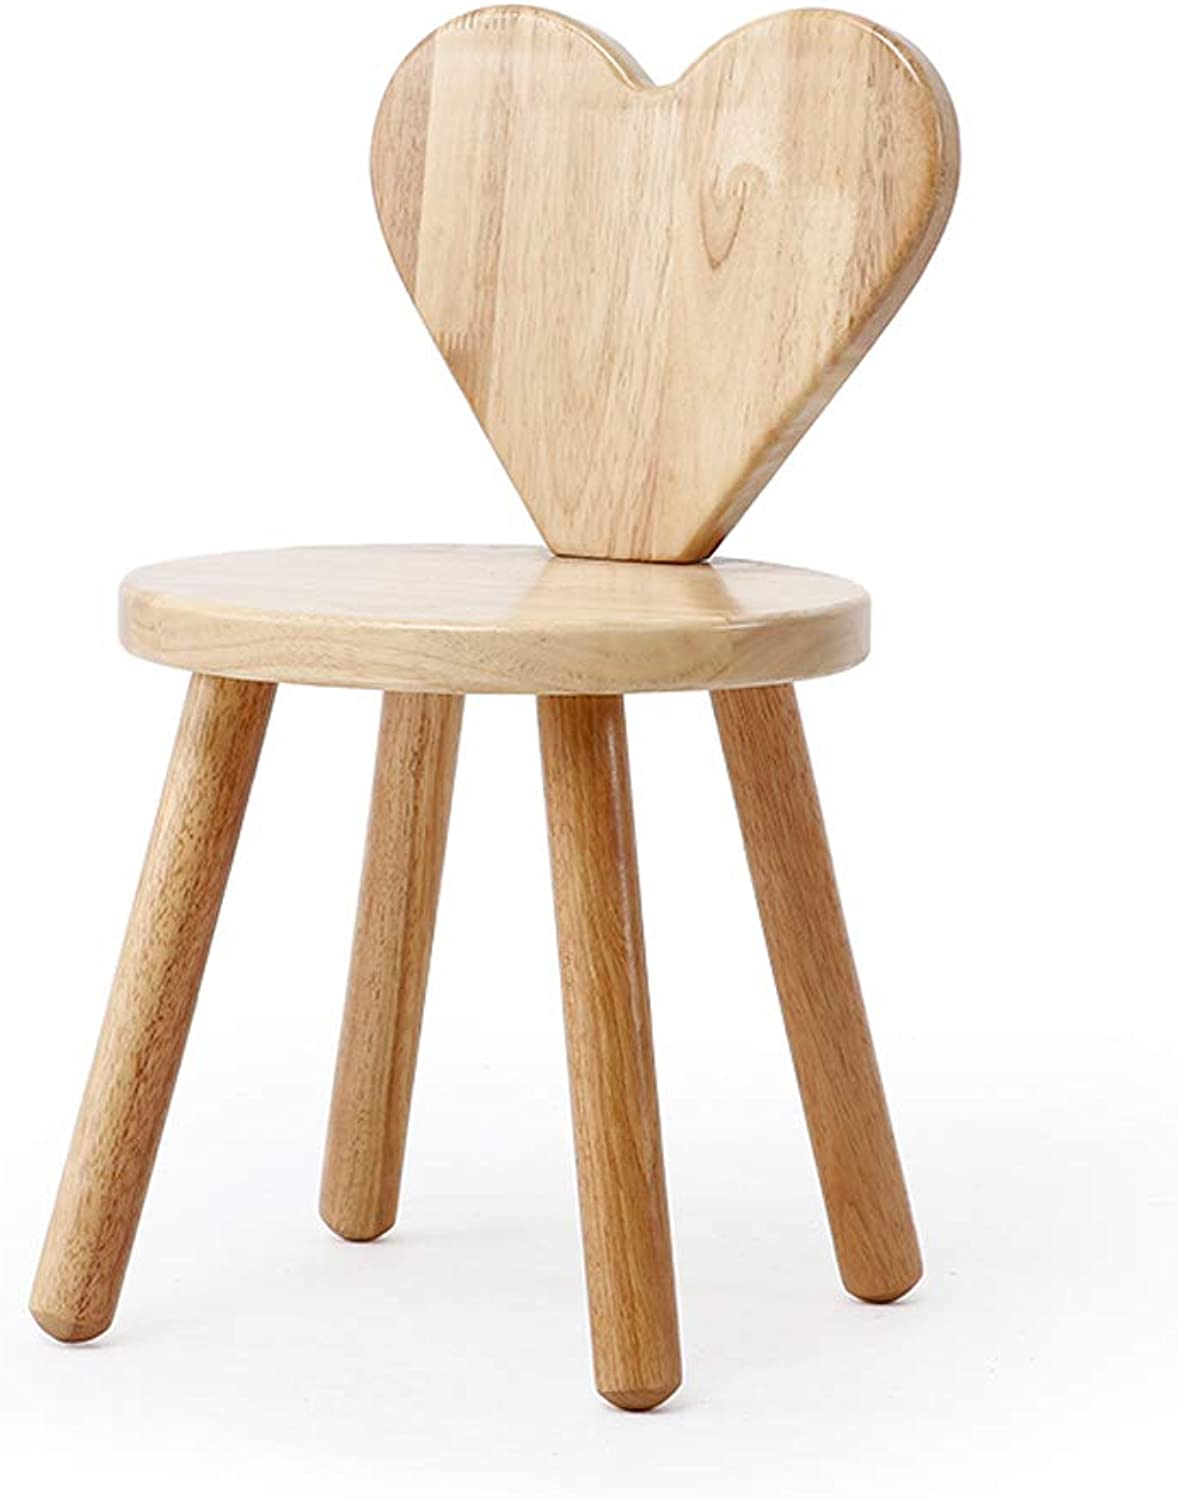 HLJ Simple and Convenient shoes Changing Stool Comfortable Household Cartoon Stool Fashionable Solid Wooden Stool Creative Personality Chair